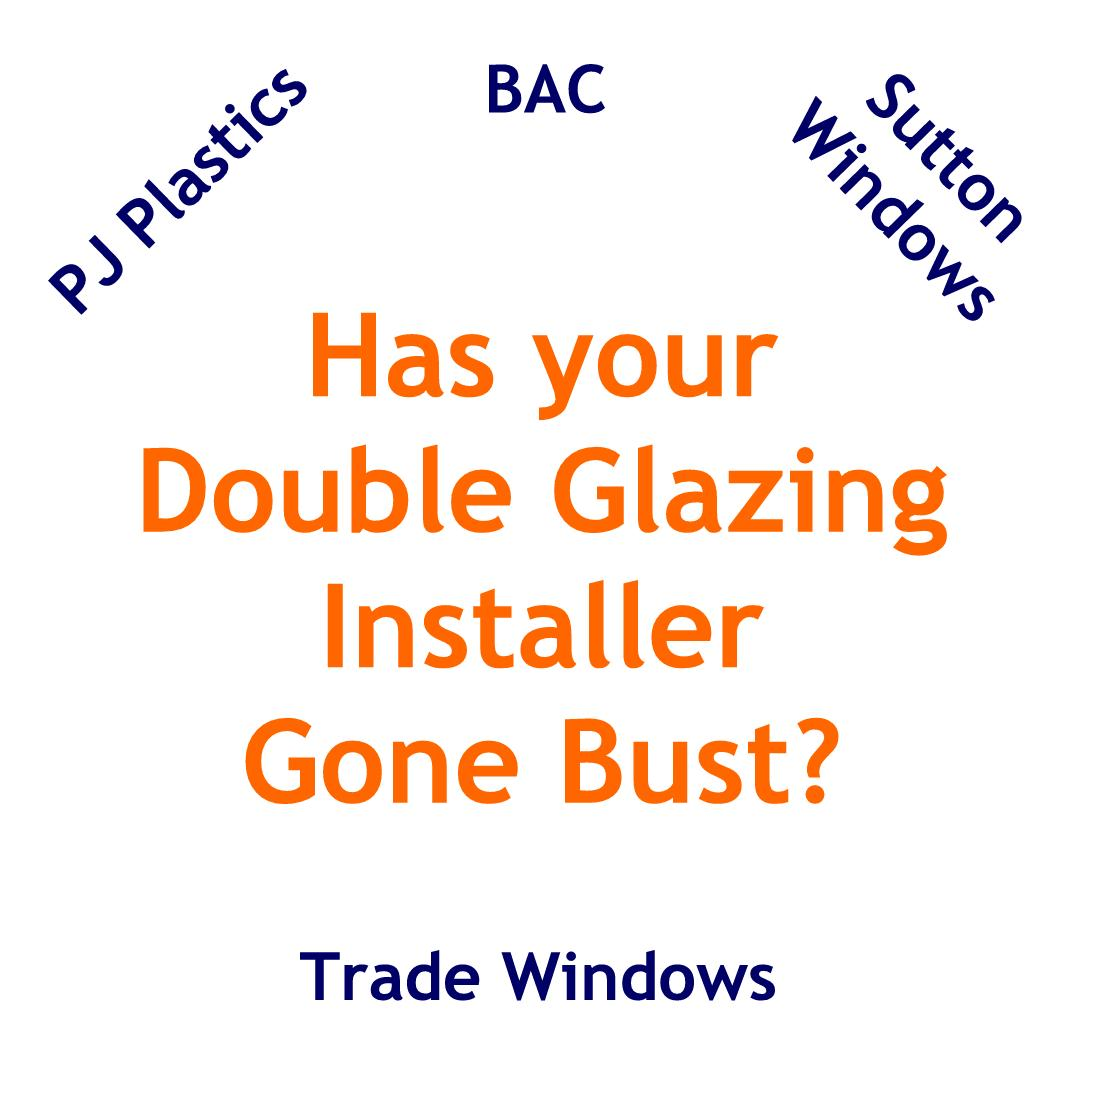 Repair service for all makes or age double glazing windows and doors including installers that have gone bust